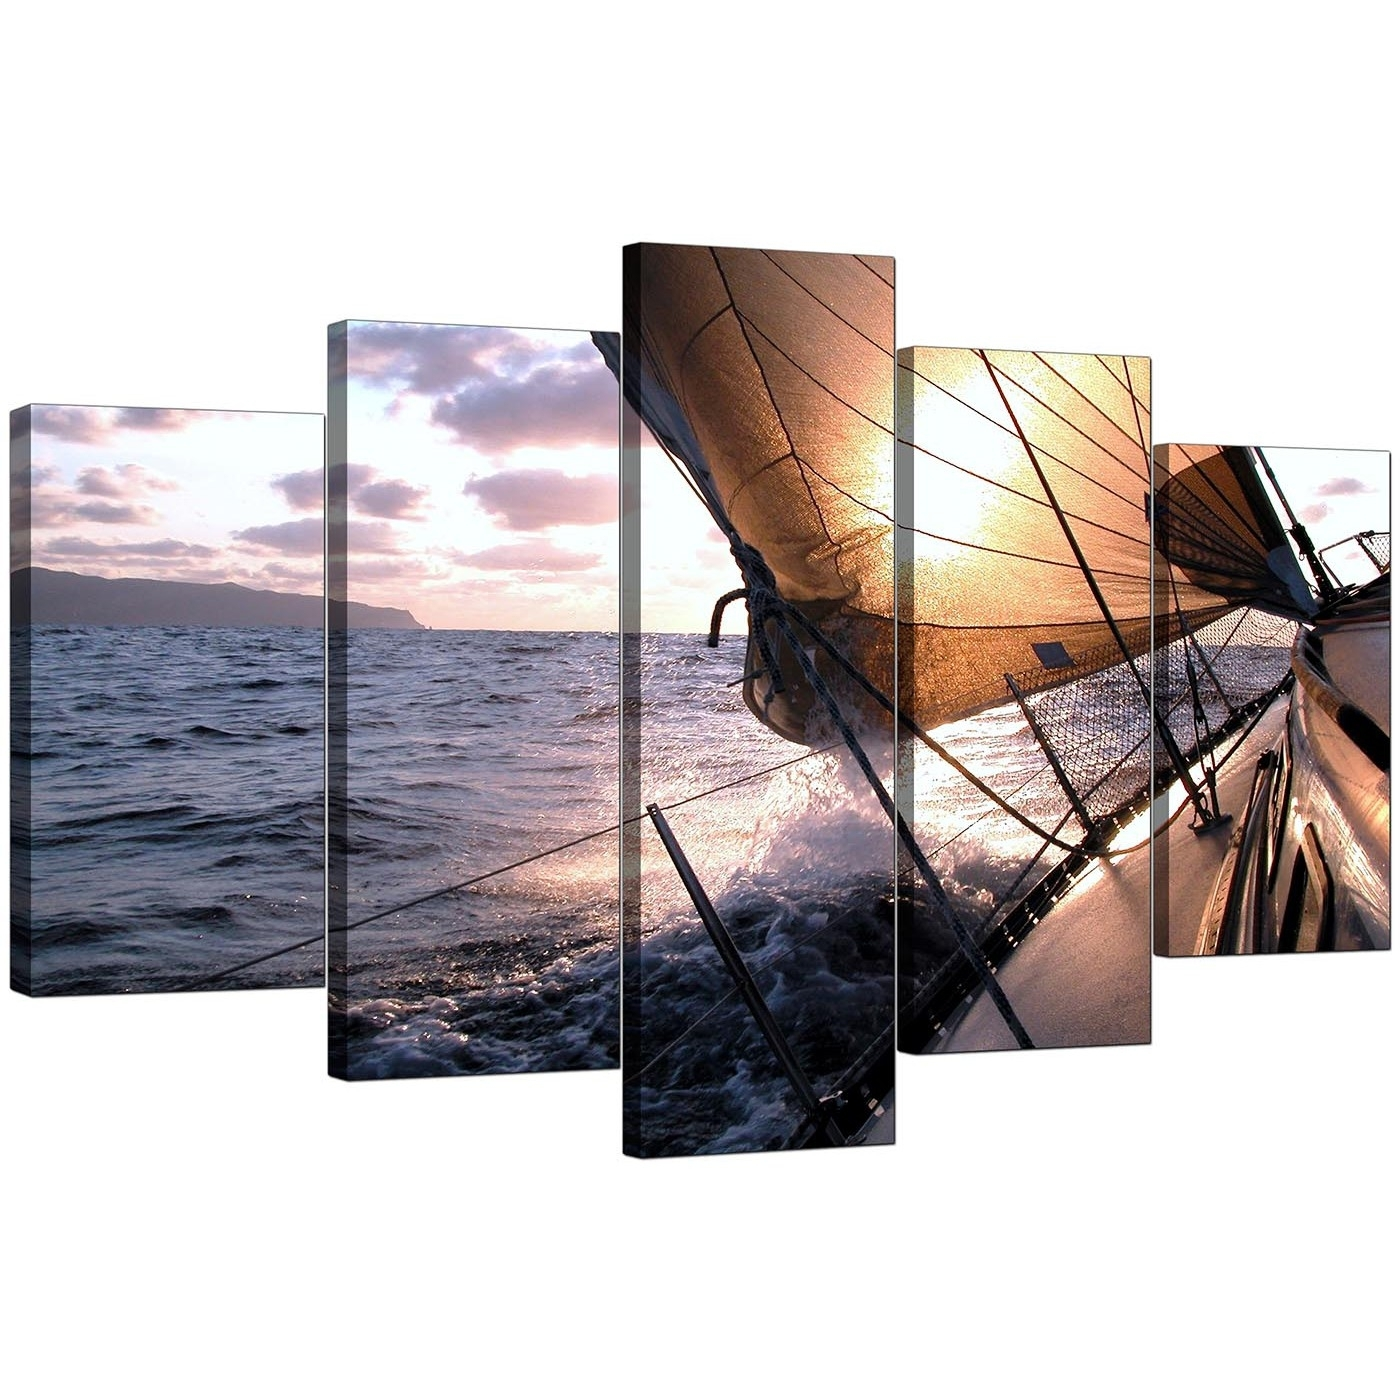 Boat Canvas Prints Uk For Your Living Room – 5 Piece Regarding Most Recent Five Piece Canvas Wall Art (Gallery 4 of 20)